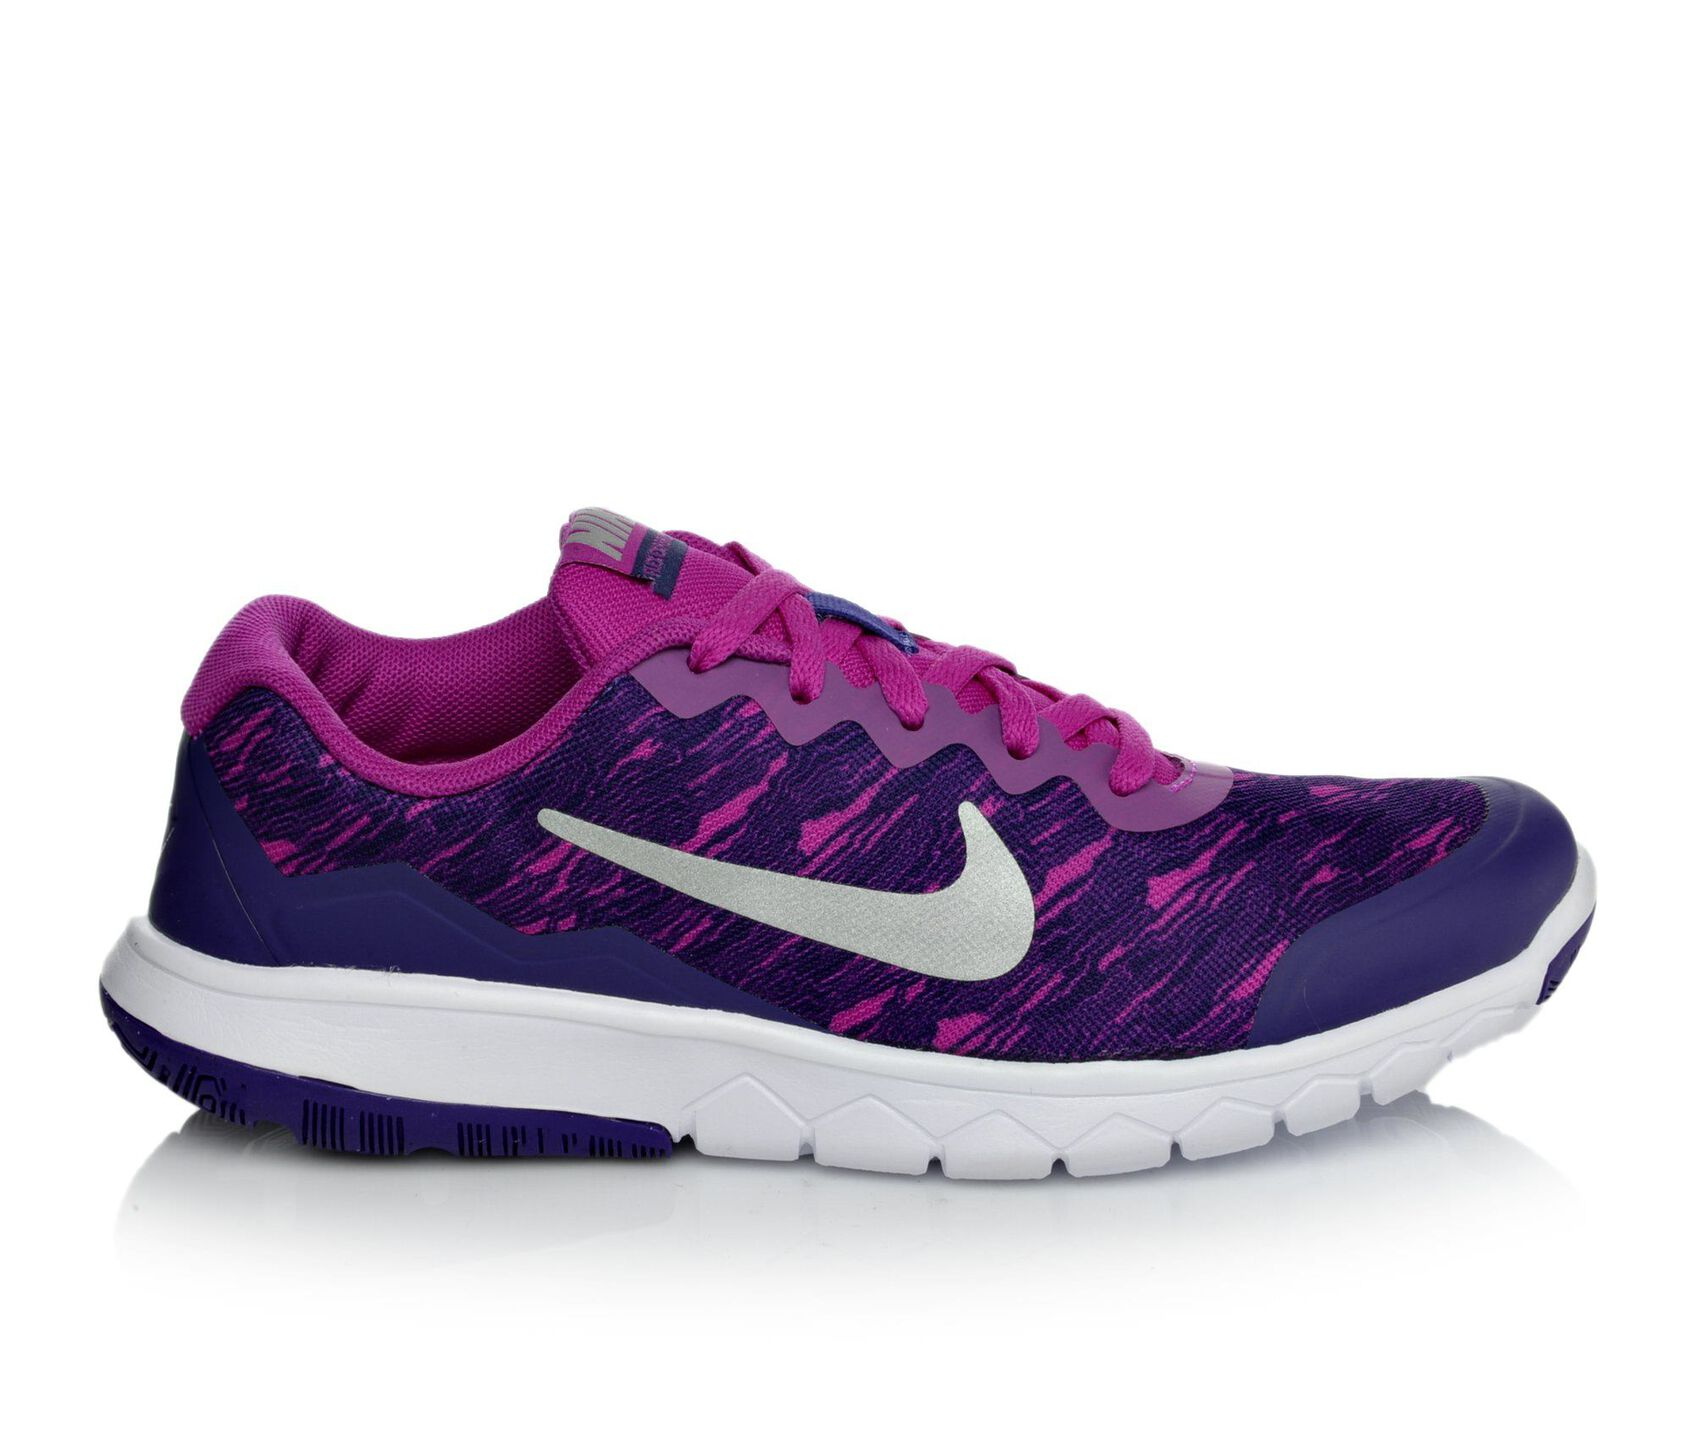 Mens Nike Free   V Running Shoes Review